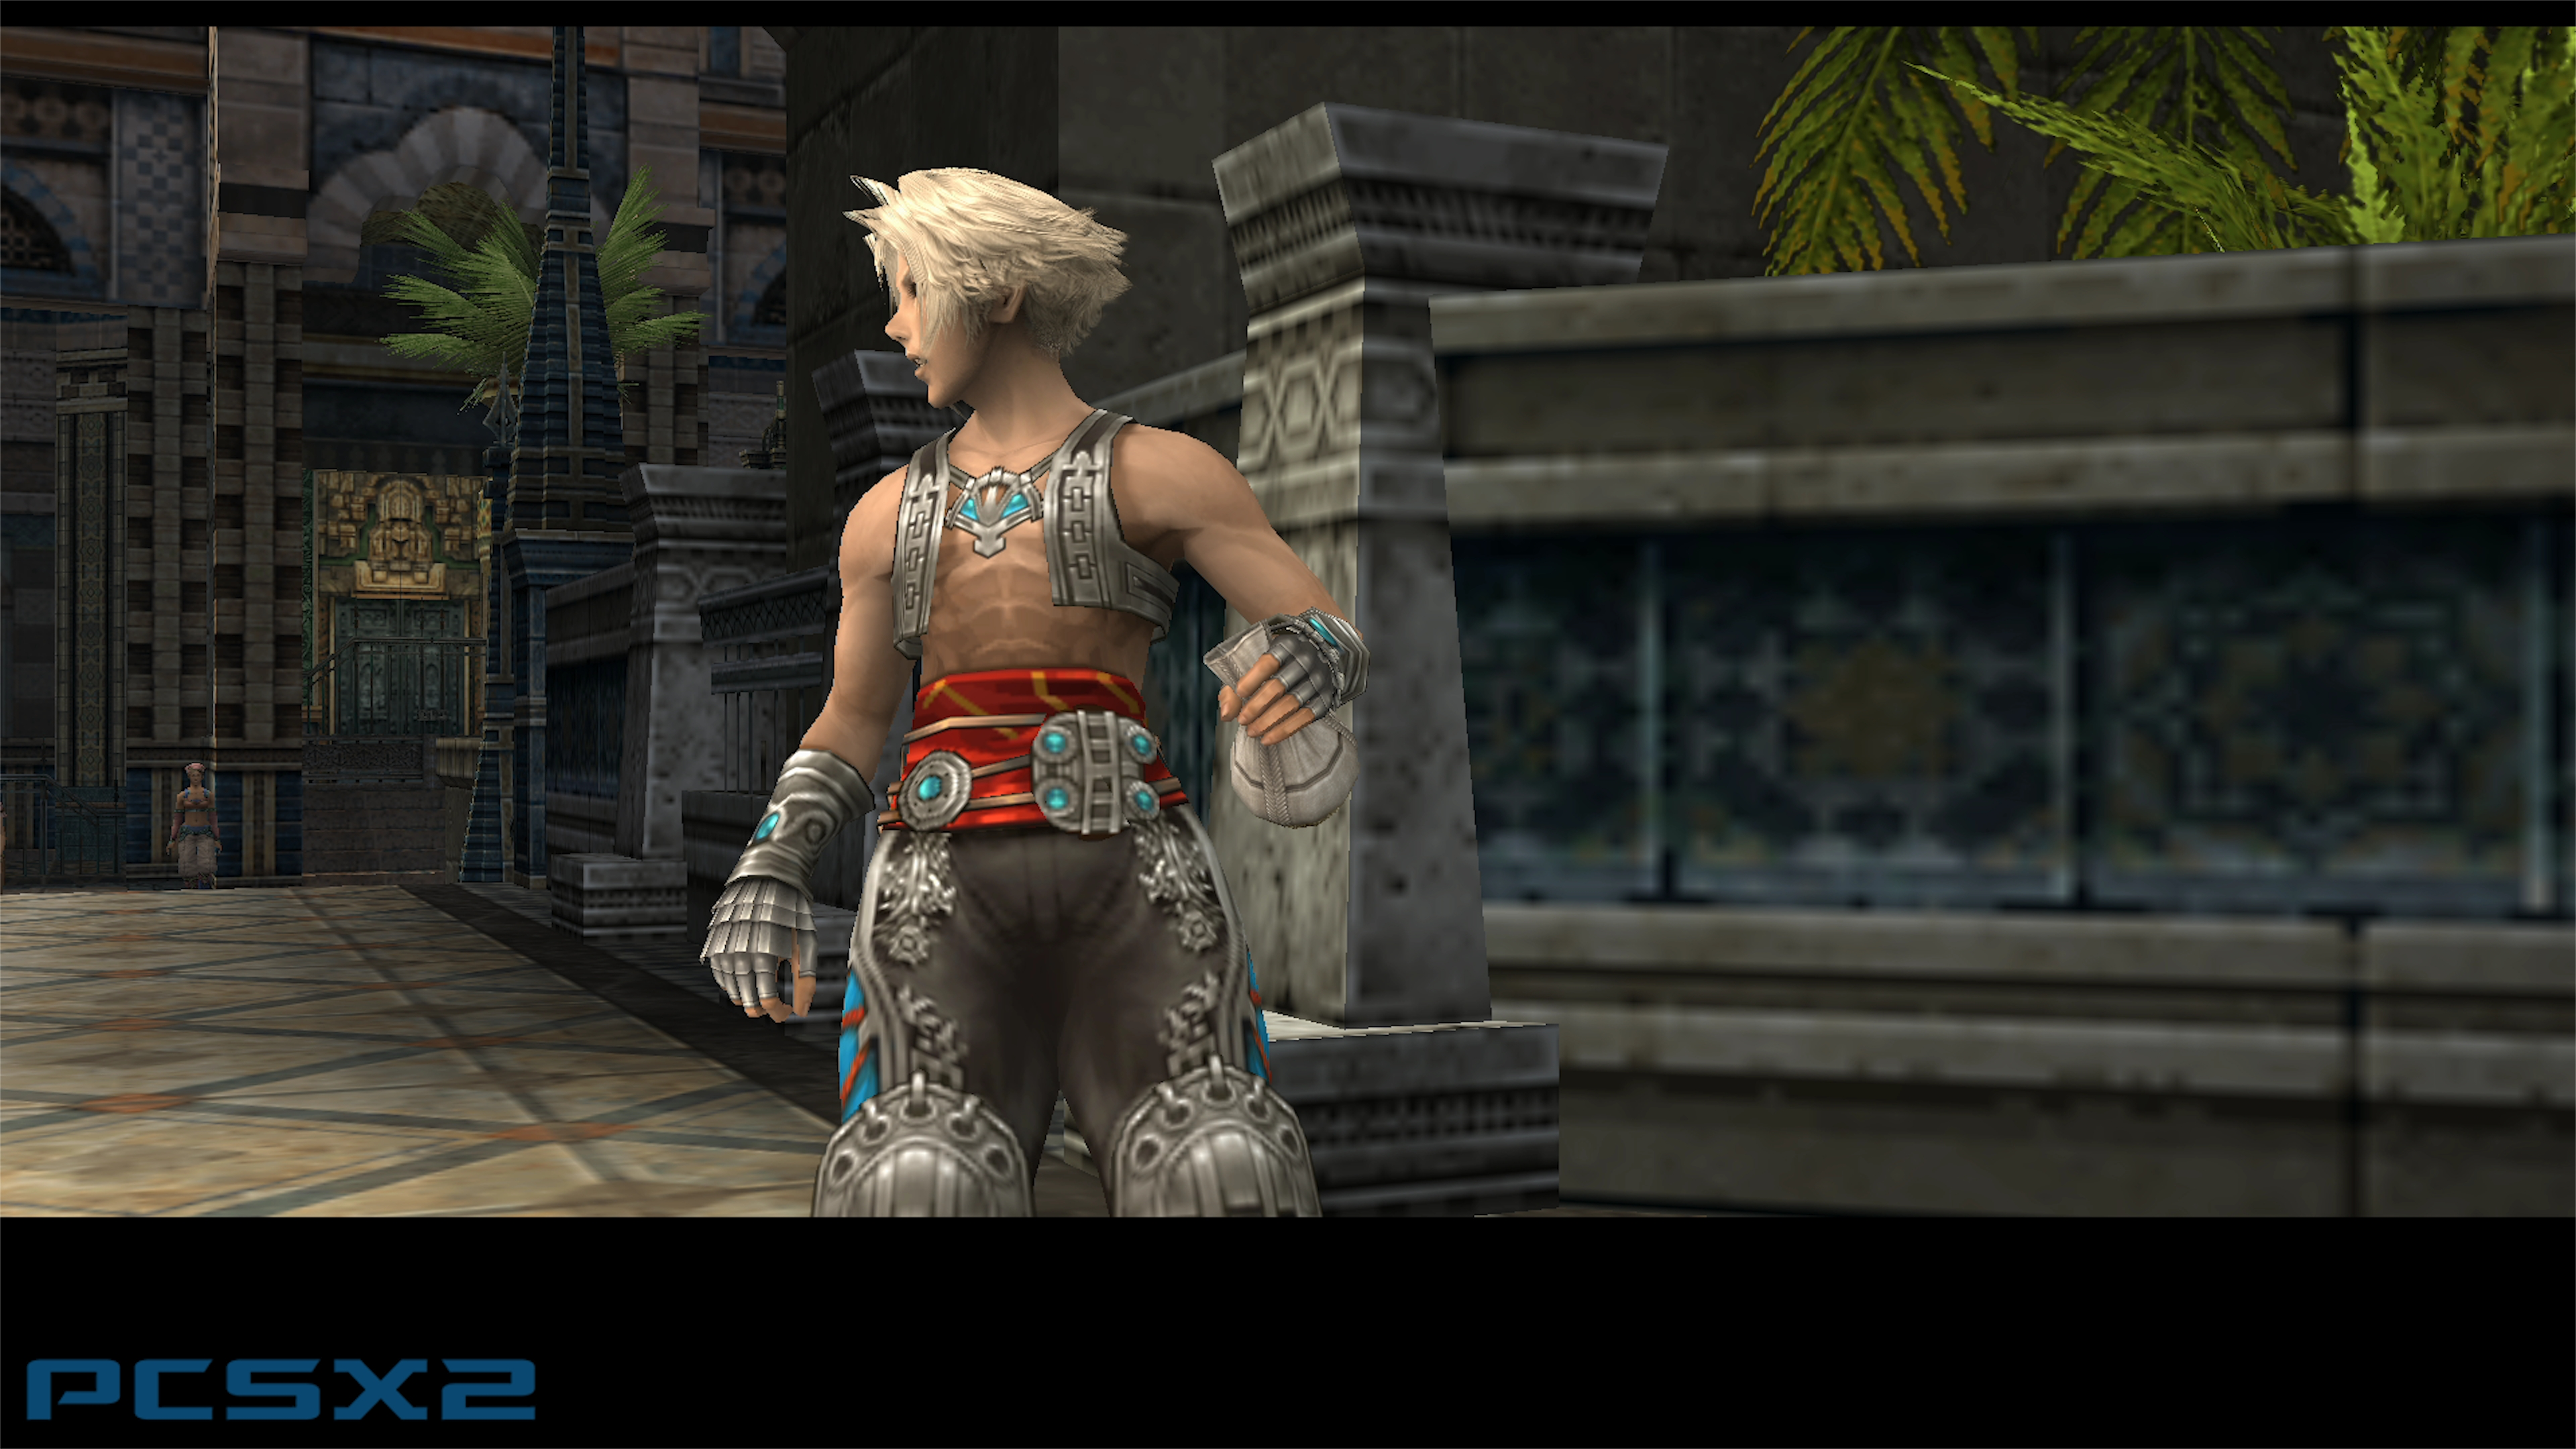 Final Fantasy 12 on PC delivers 60fps - but system requirements are